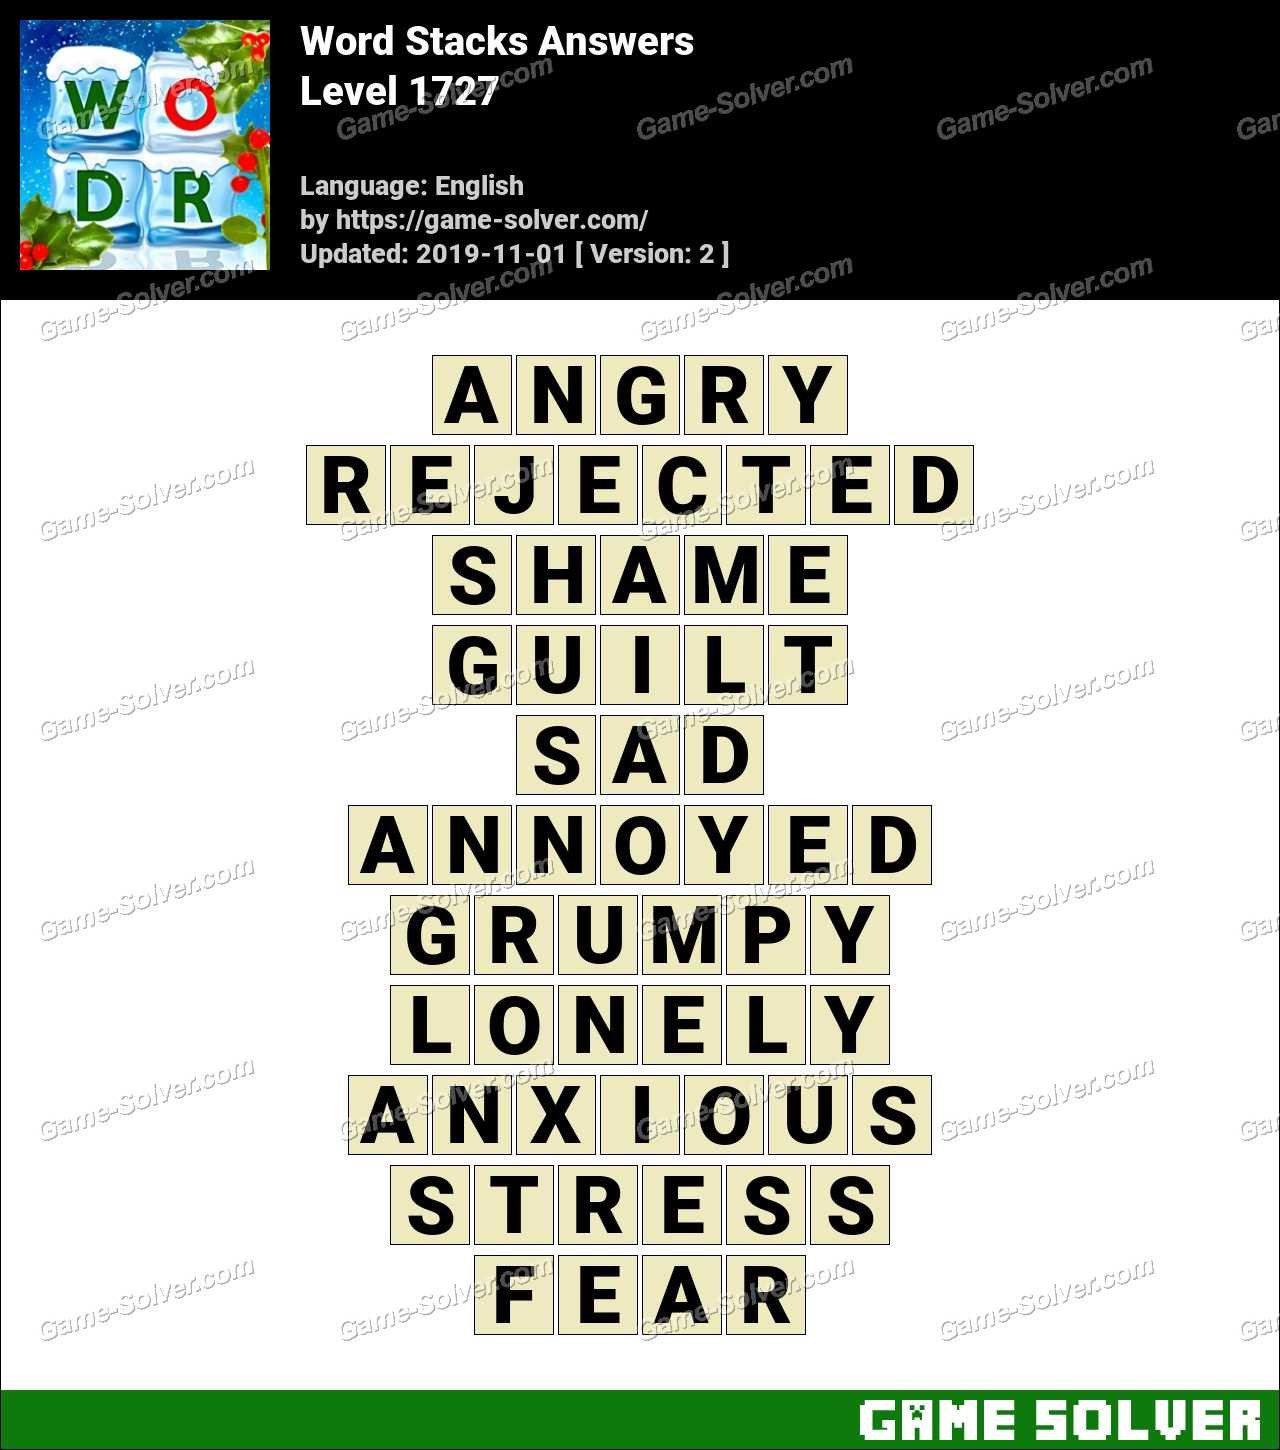 Word Stacks Level 1727 Answers